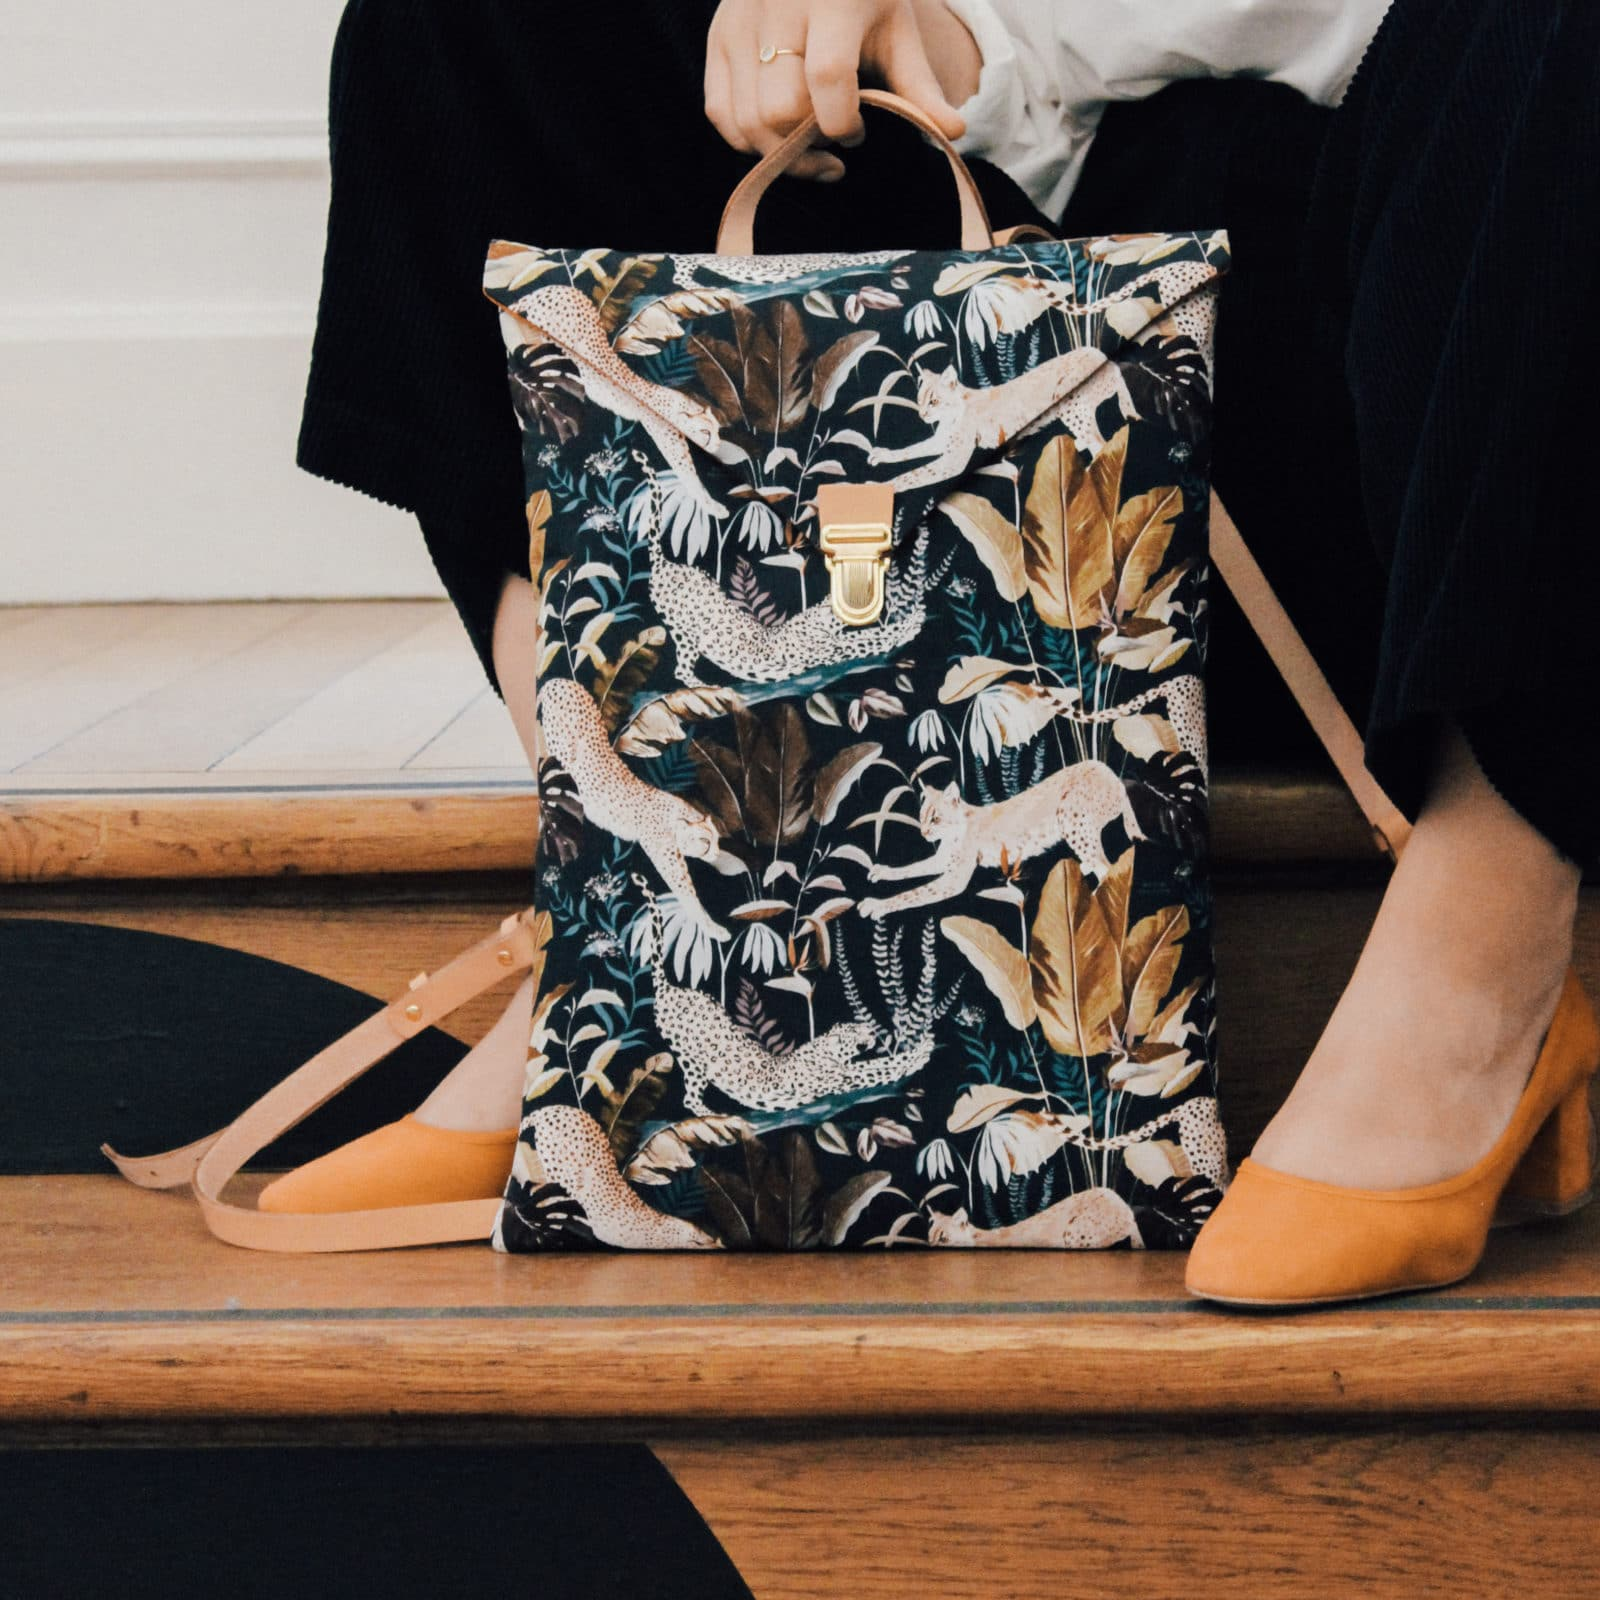 Sac à dos avec un motif Jungle 22